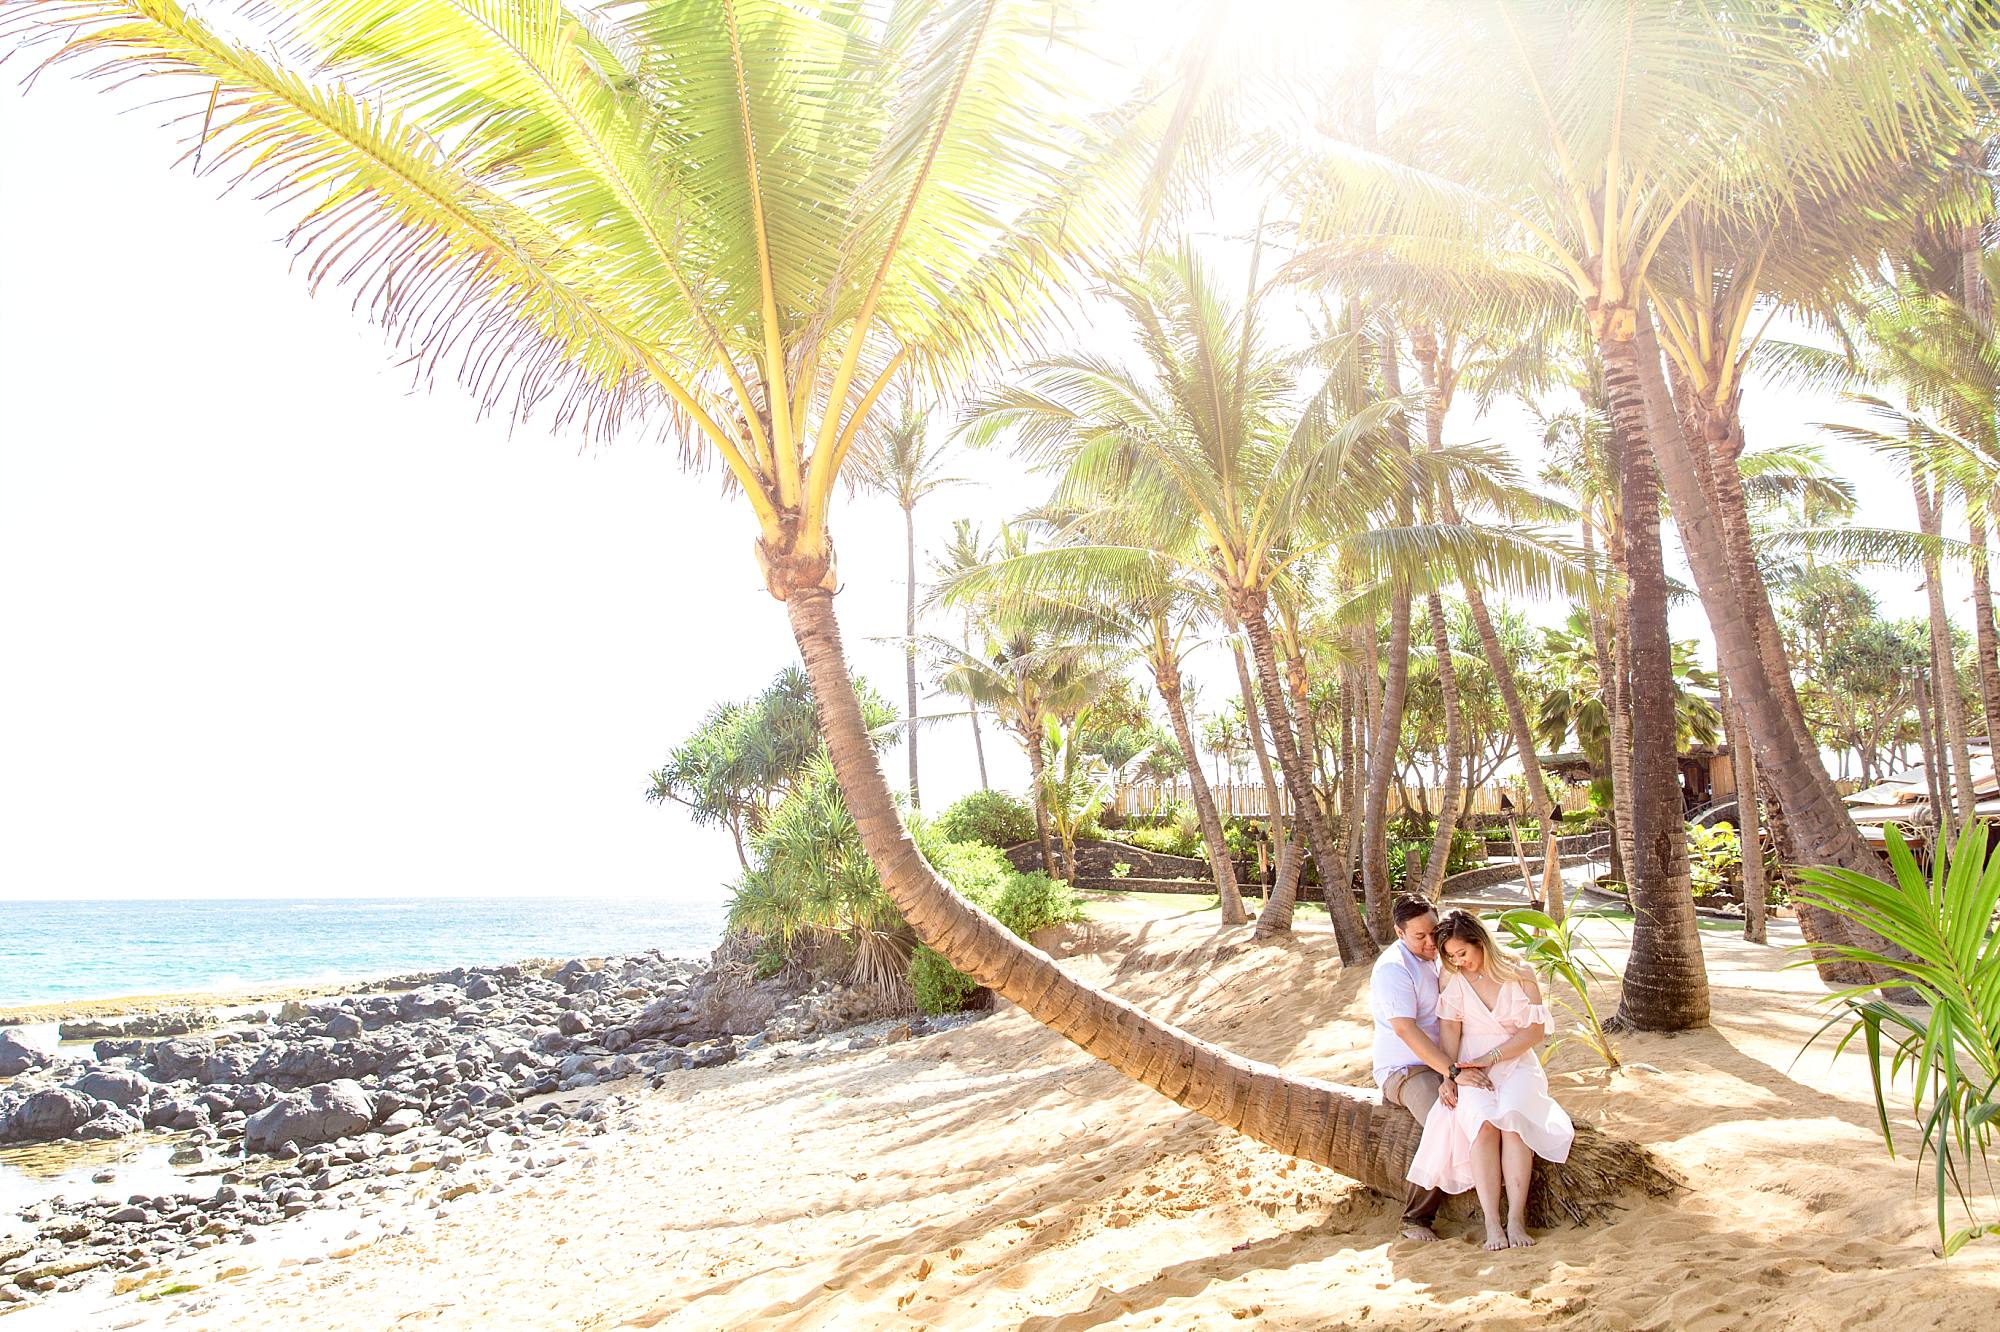 incredible light pouring through a sideways palm tree that a couple is sitting on